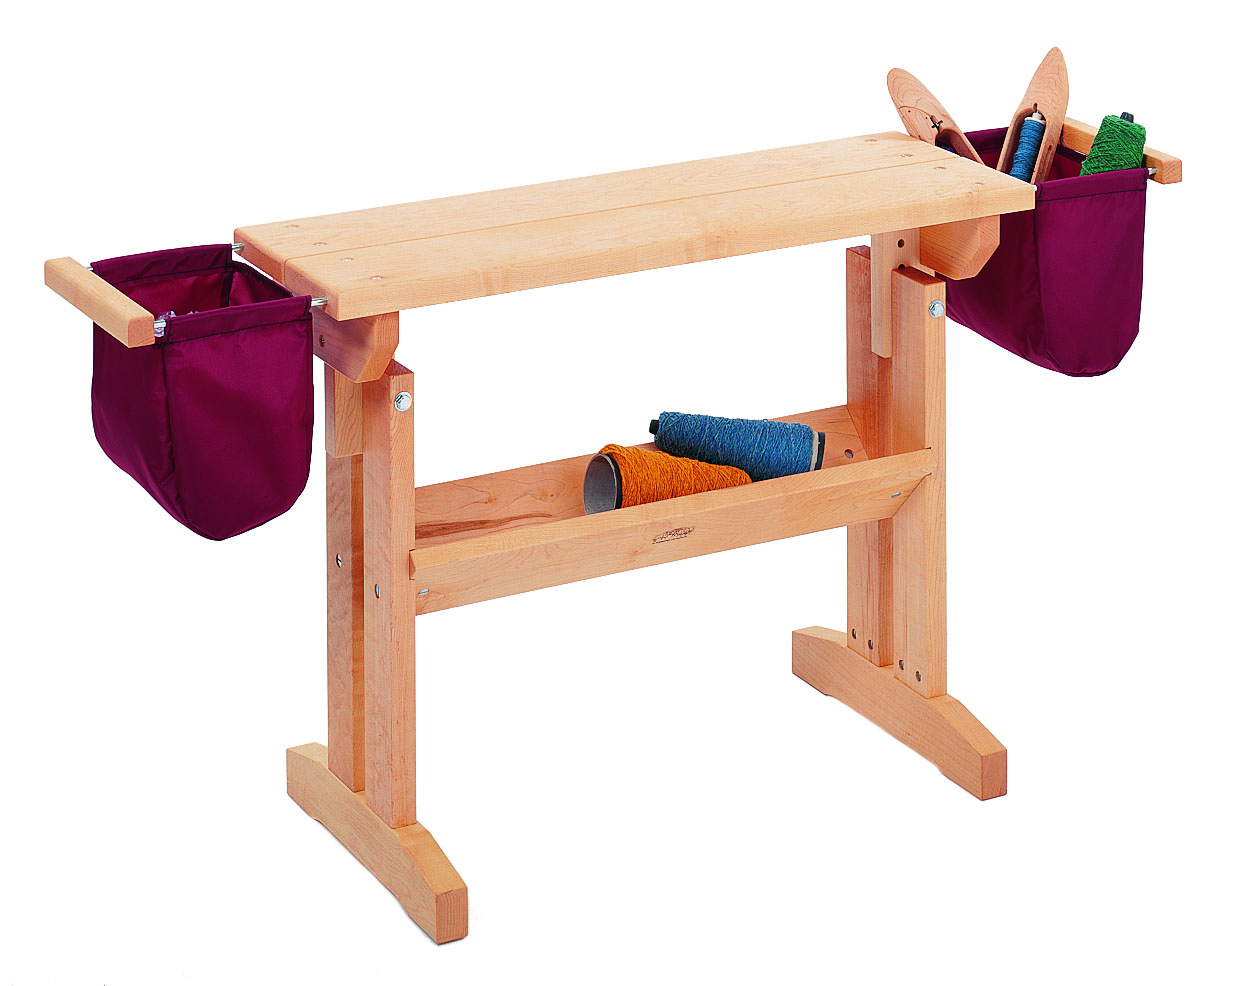 Loom Bench with Bags